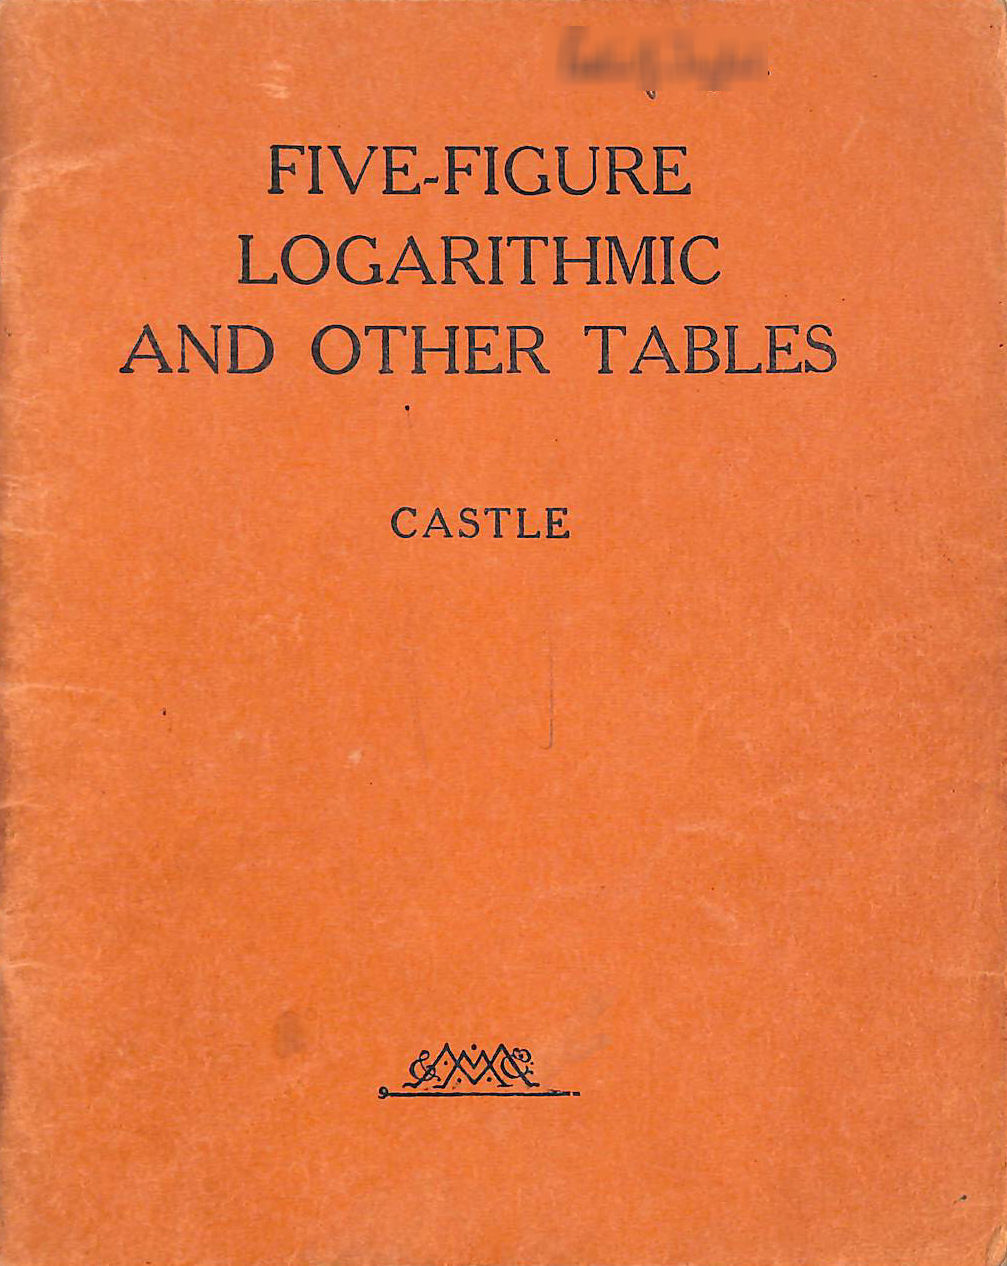 Image for Five-Figure Logarithmic And Other Tables